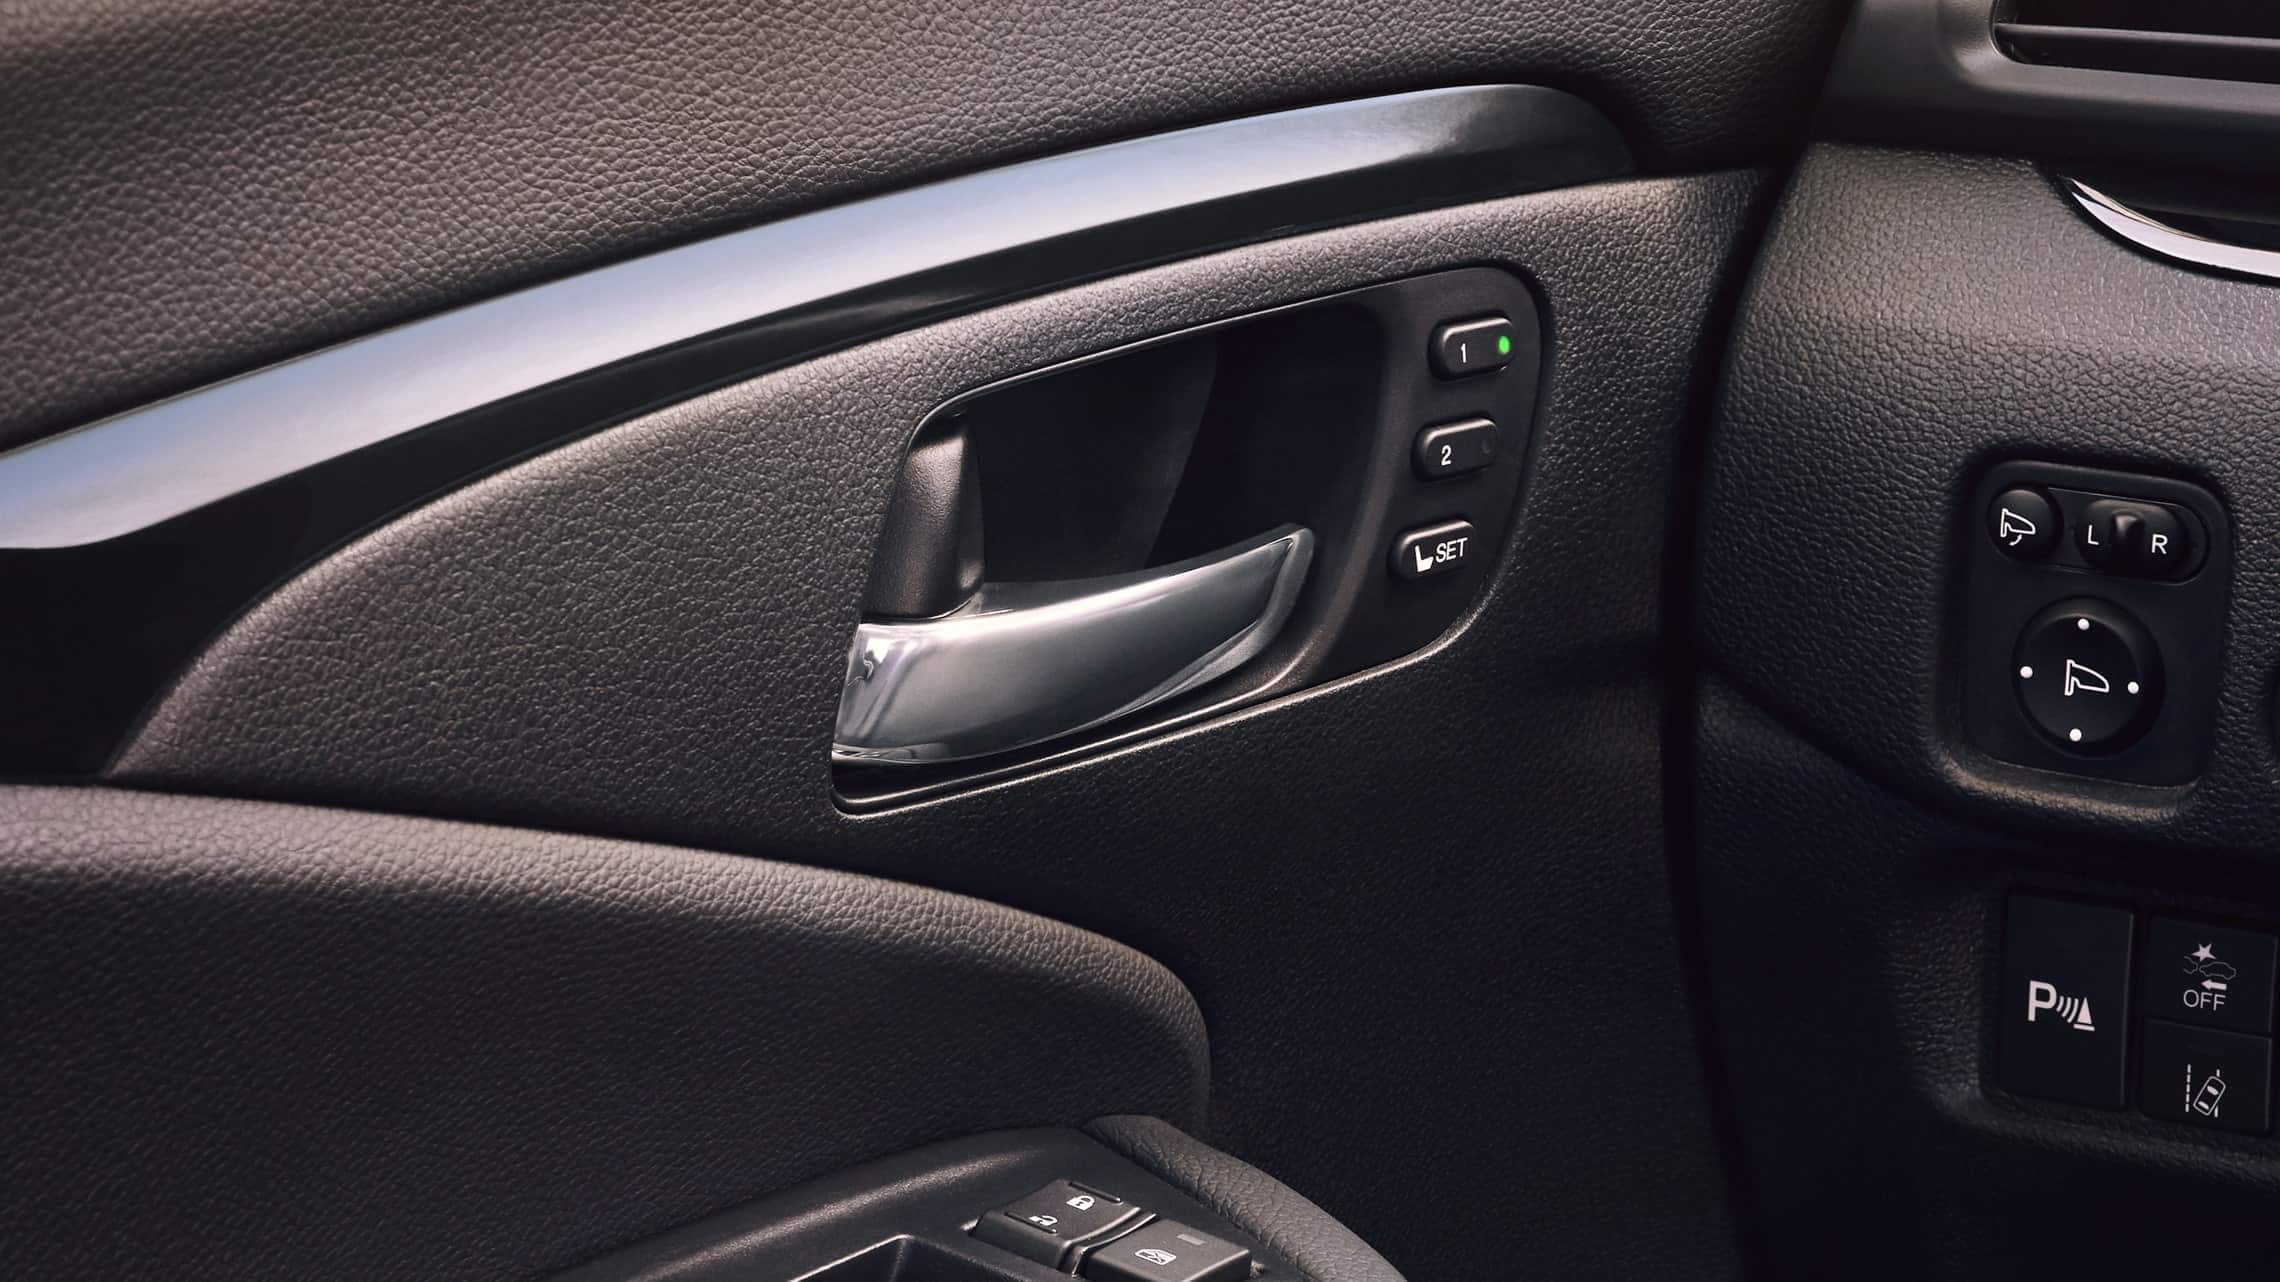 Driver's seat memory setting detail on the 2019 Honda Passport Elite with Black Leather interior.